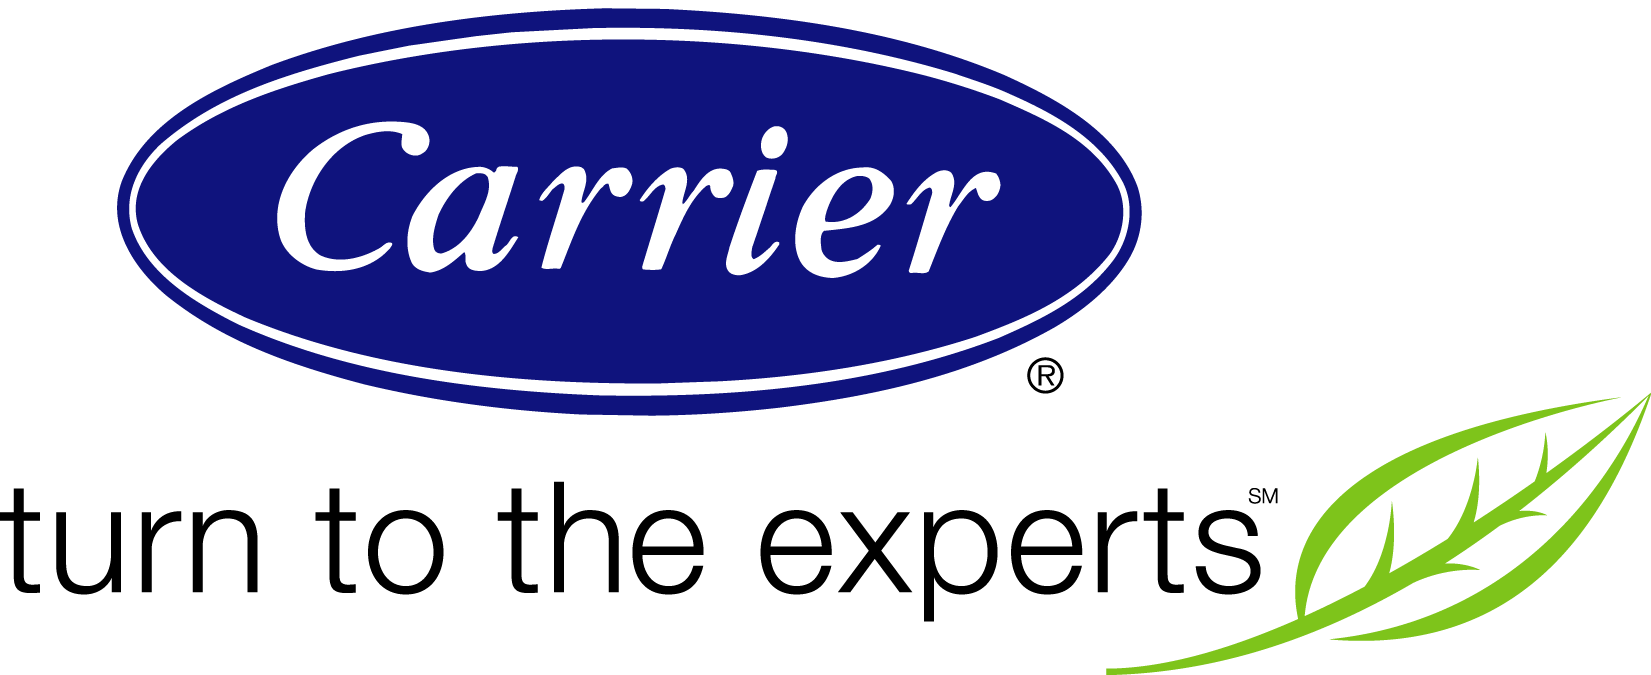 Carrier Air Conditioning Services in Phoenix